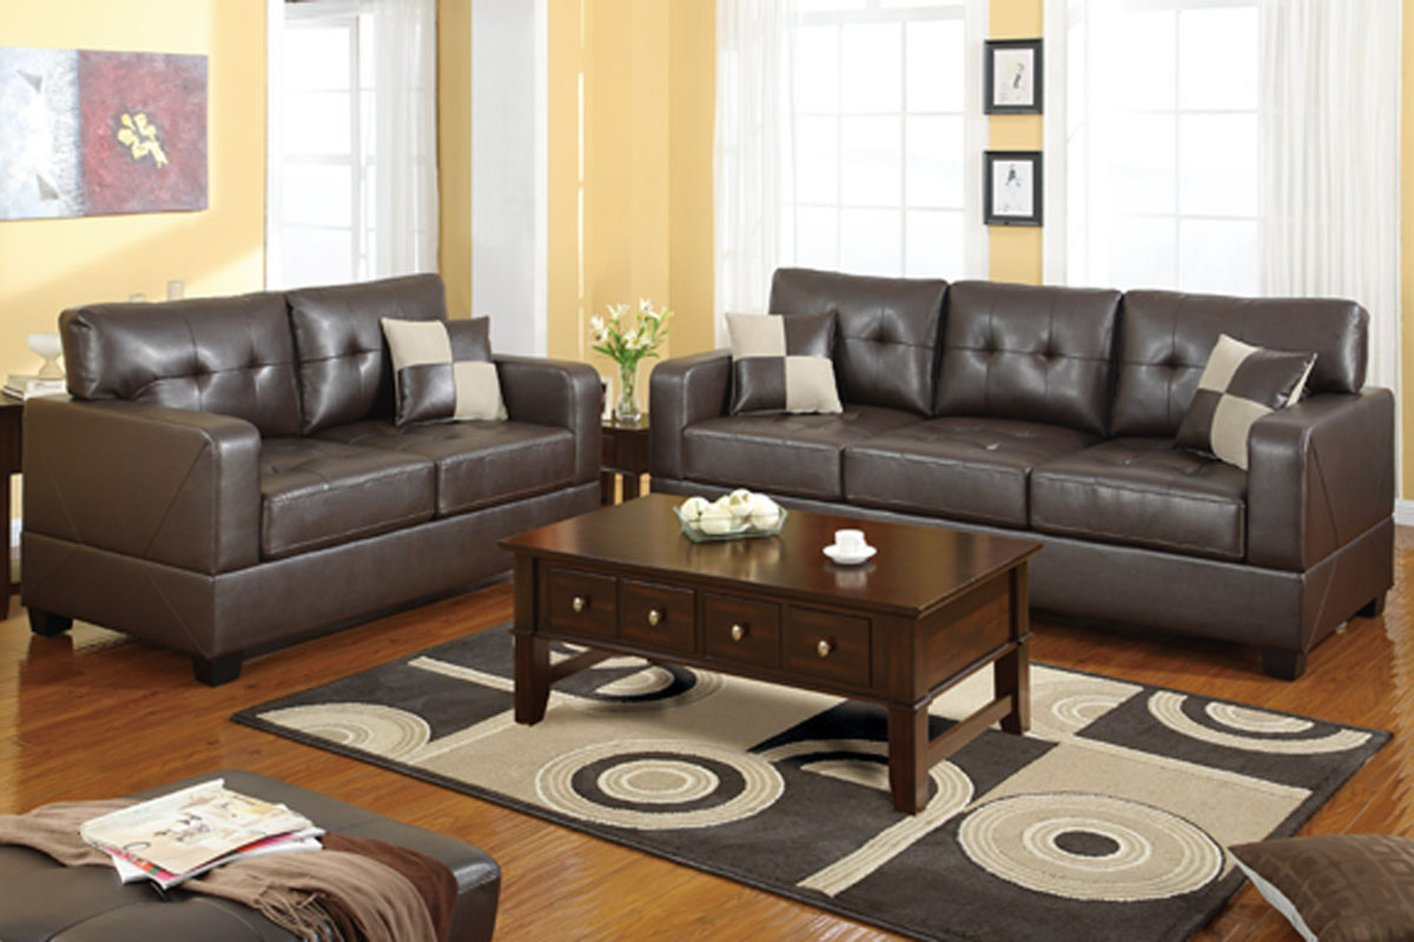 Sofa and Loveseat Set  StealASofa Furniture Outlet Los Angeles CA